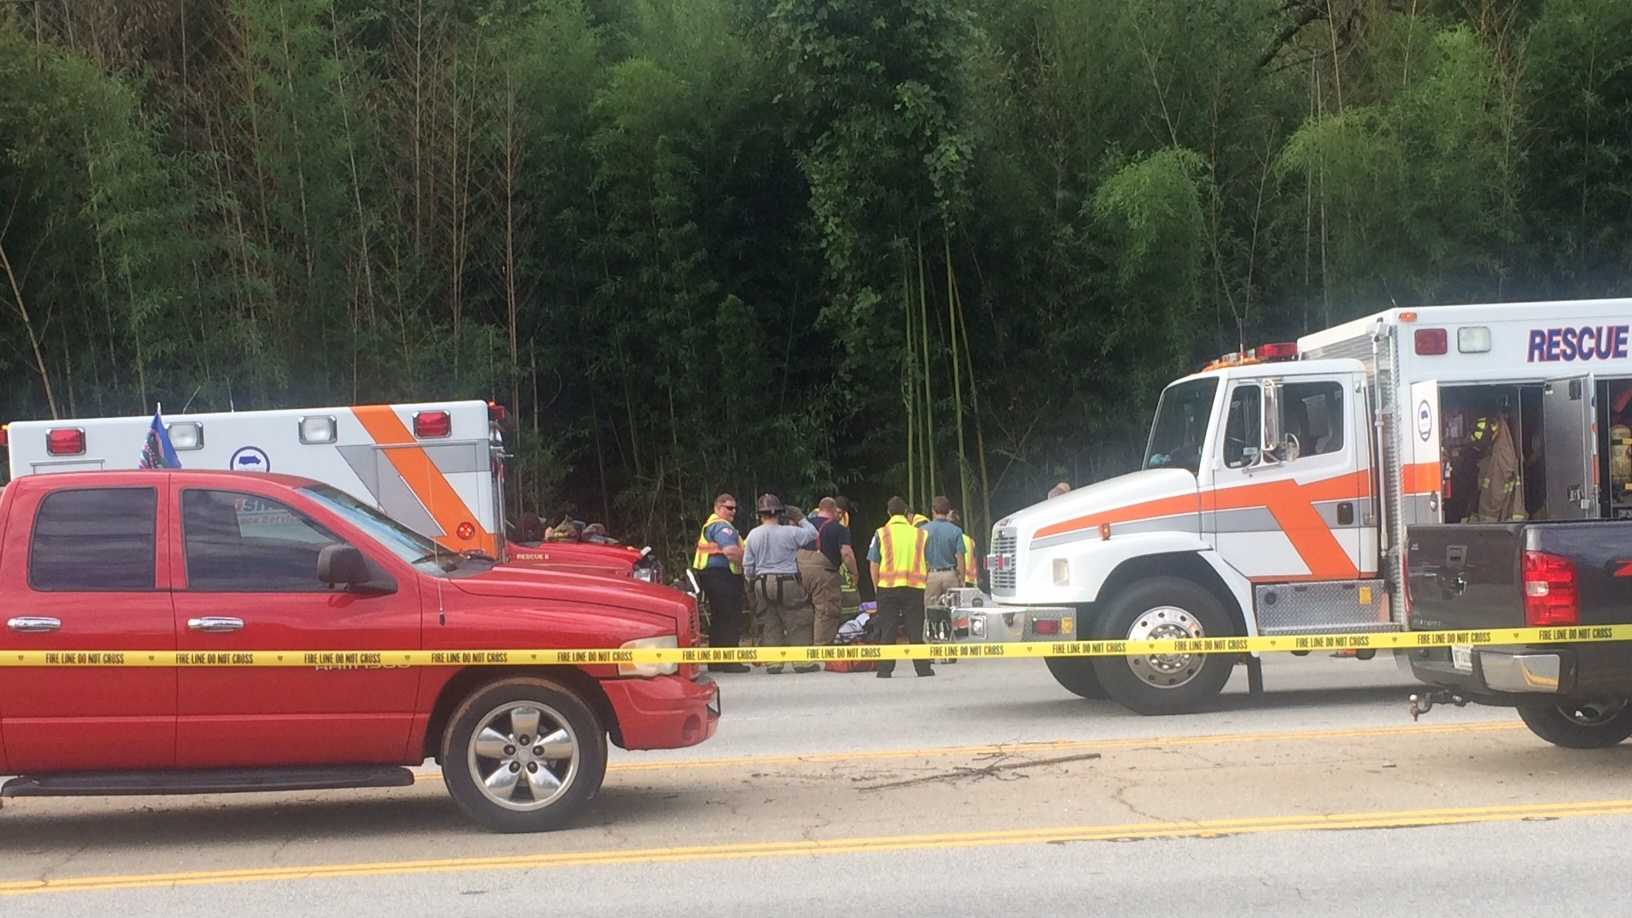 Authorities say the vehicle went off the road, through a bamboo forest and down an embankment.